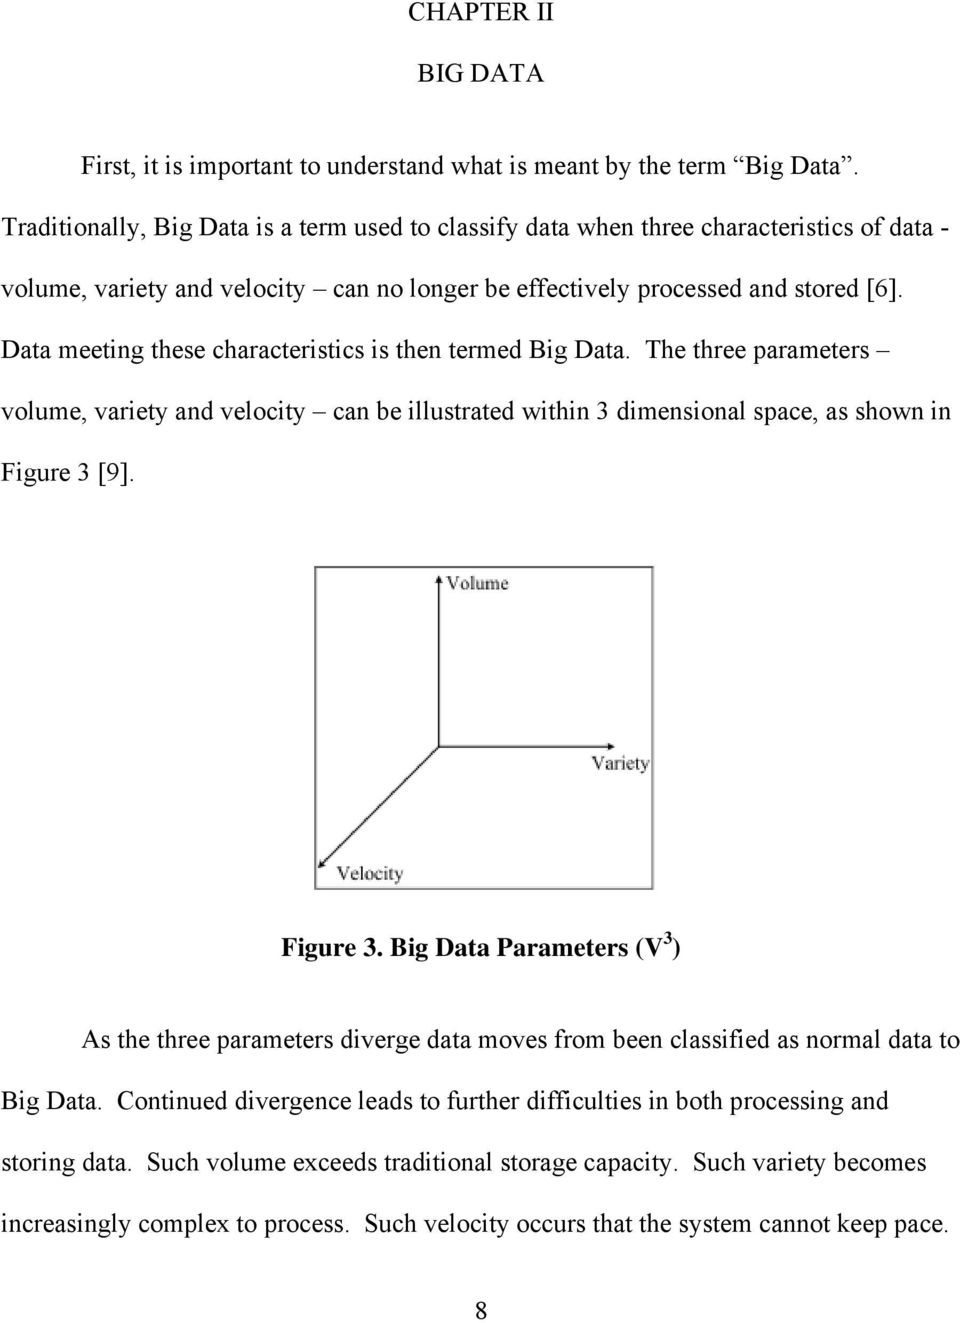 Data meeting these characteristics is then termed Big Data. The three parameters volume, variety and velocity can be illustrated within 3 dimensional space, as shown in Figure 3